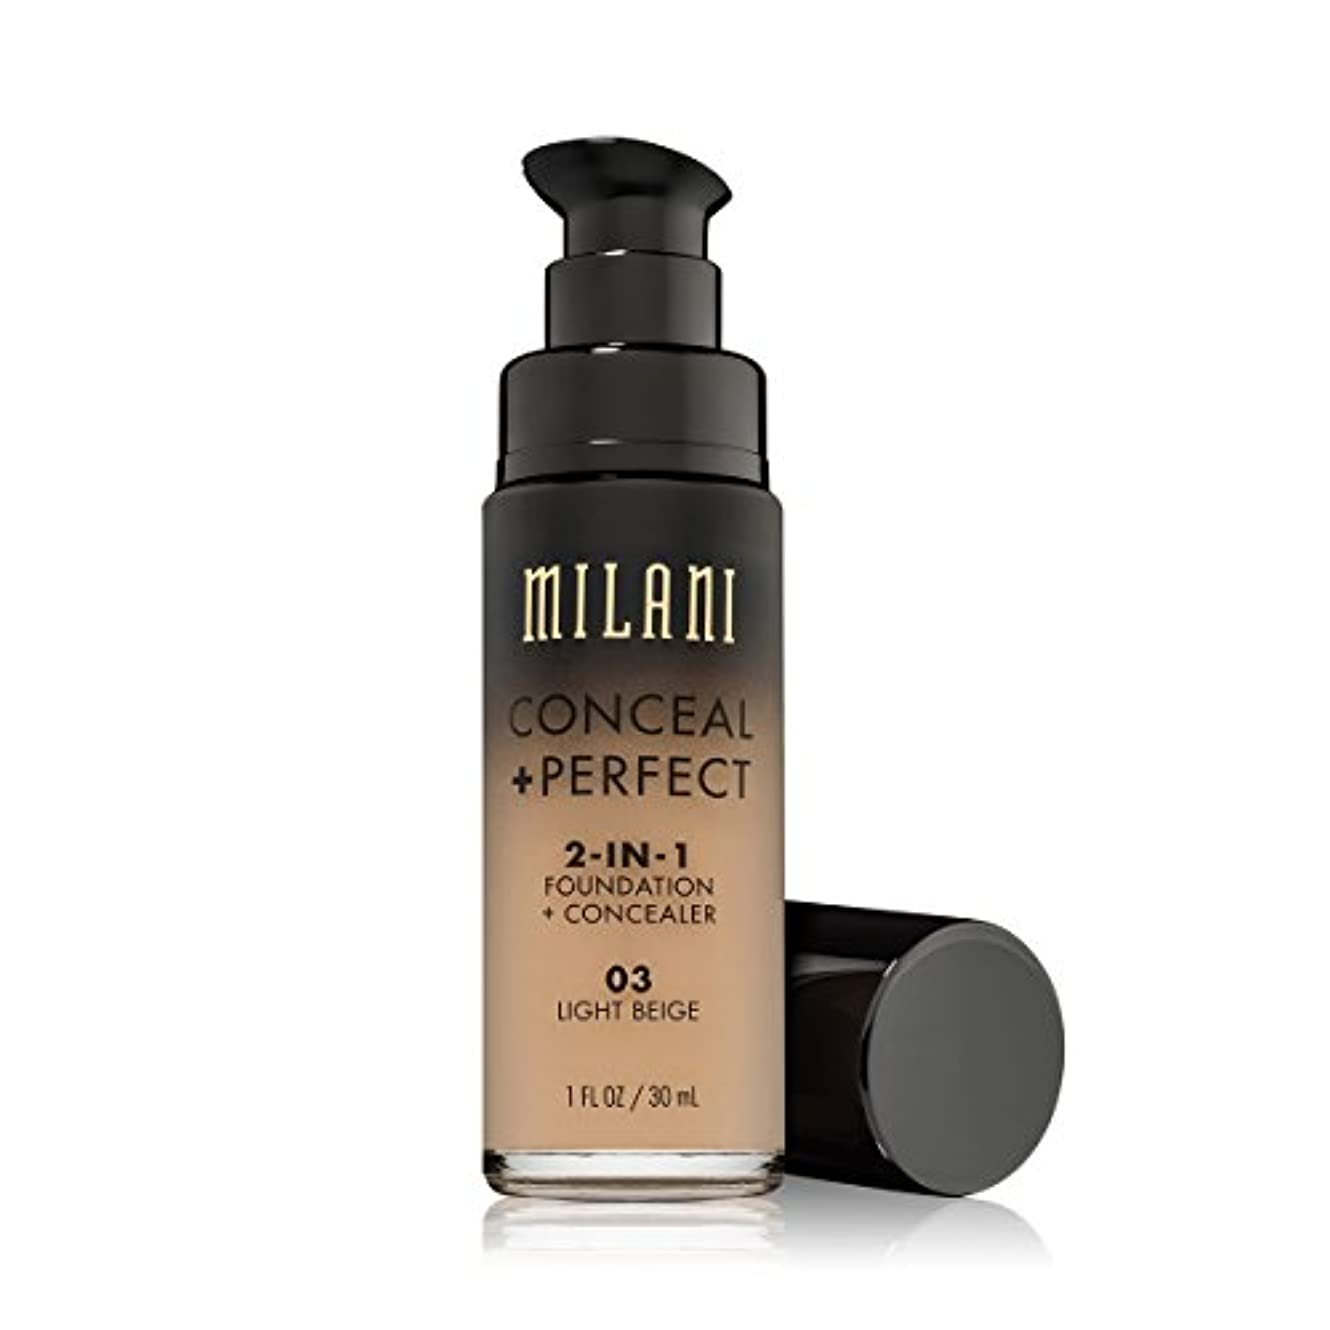 彼女自身化粧葉を集めるMILANI Conceal + Perfect 2-In-1 Foundation + Concealer - Light Beige (並行輸入品)